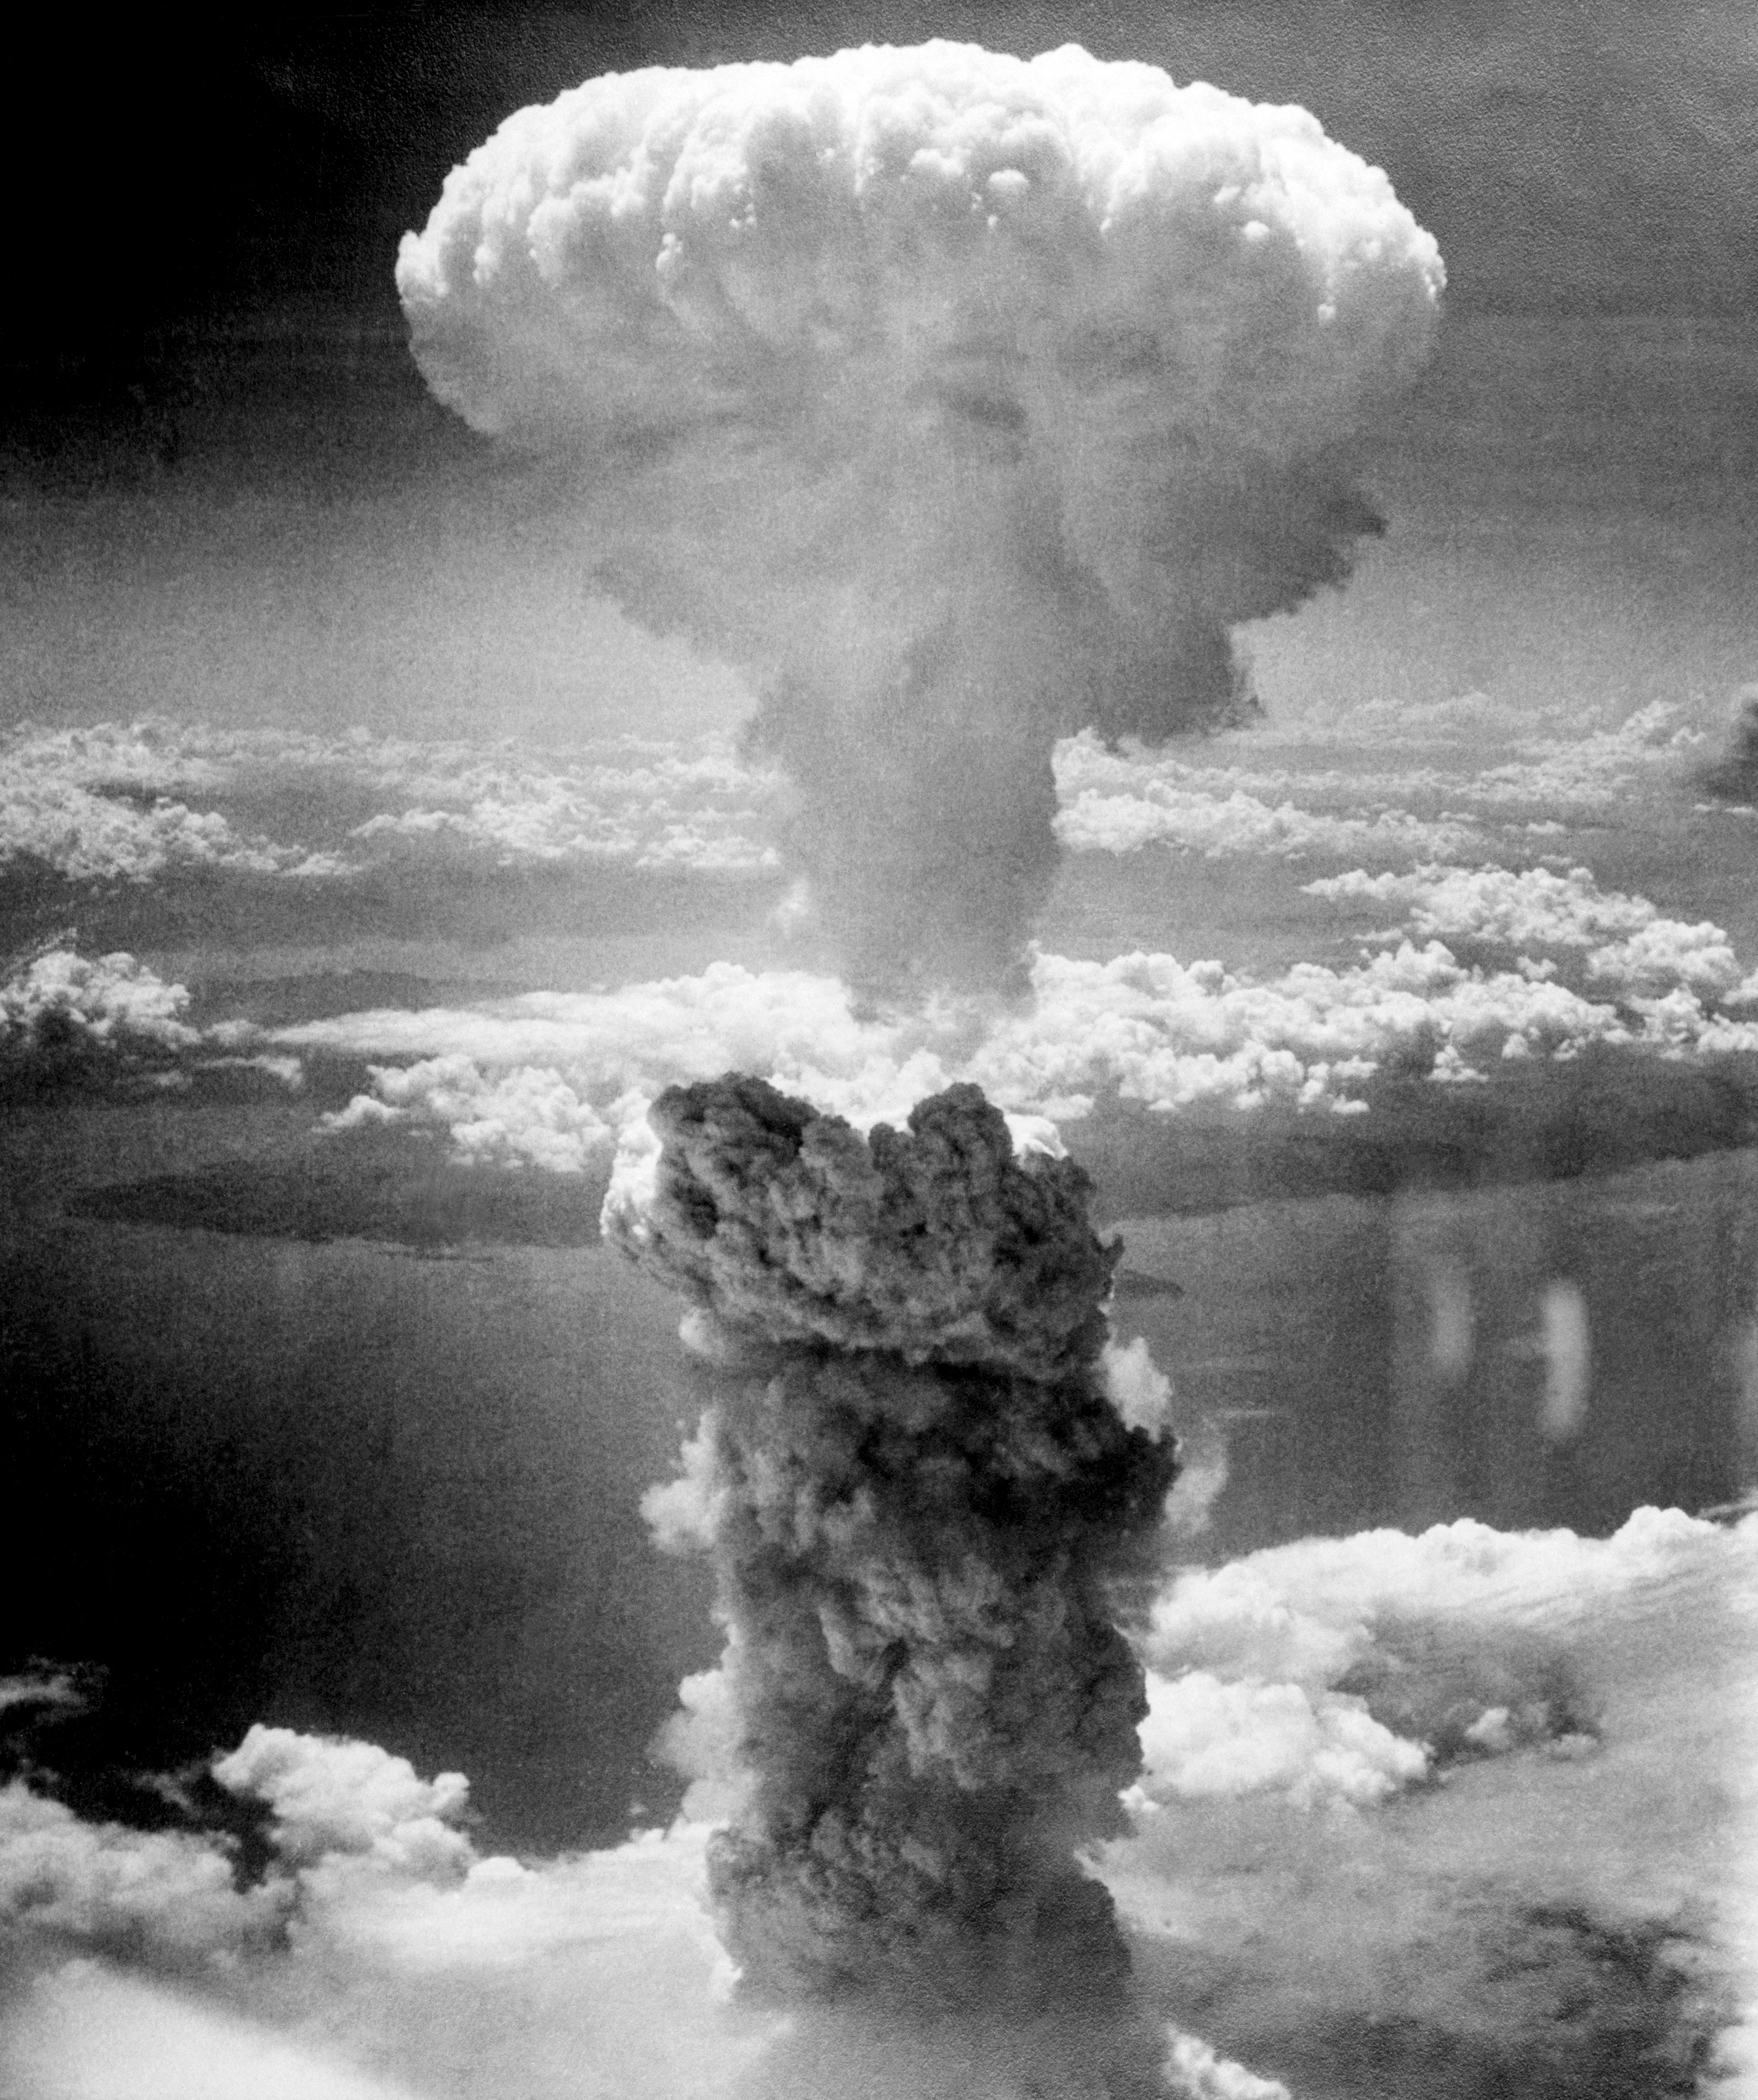 Atomic bombing of Nagasaki on August 9, 1945